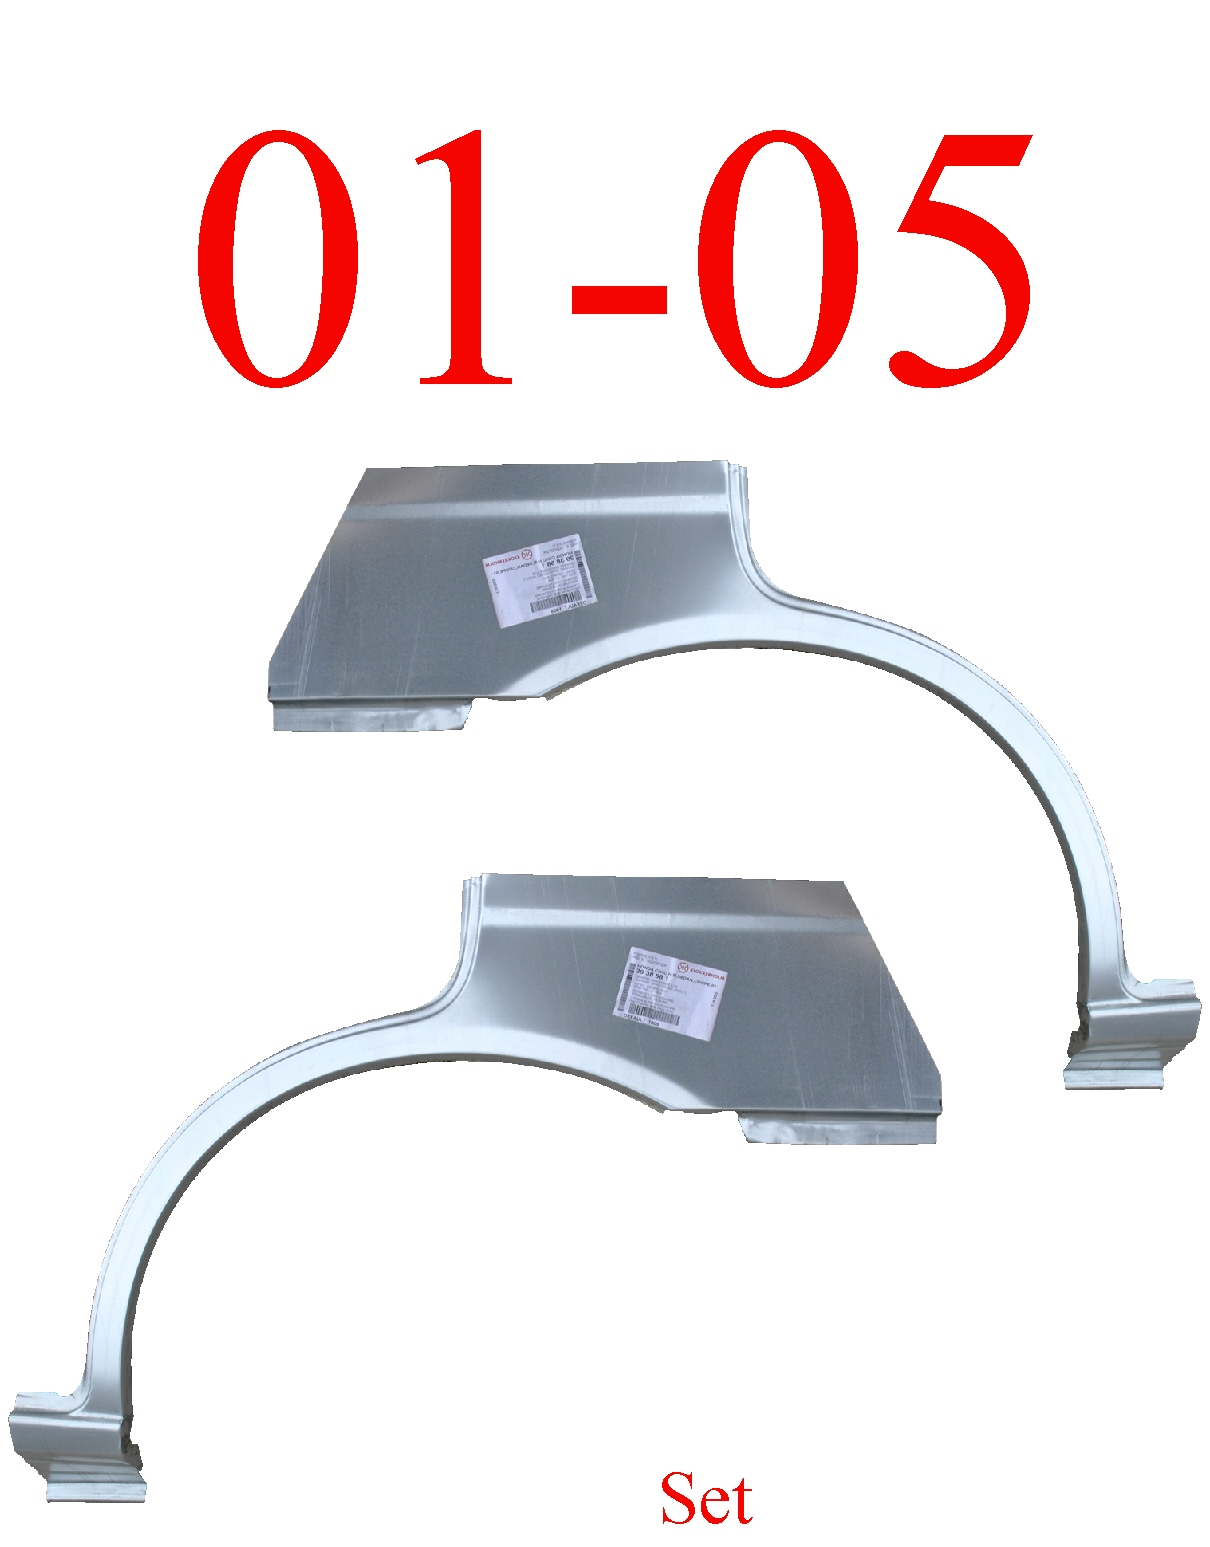 01-05 Honda Civic Sedan Upper Arch & Dog Leg Set